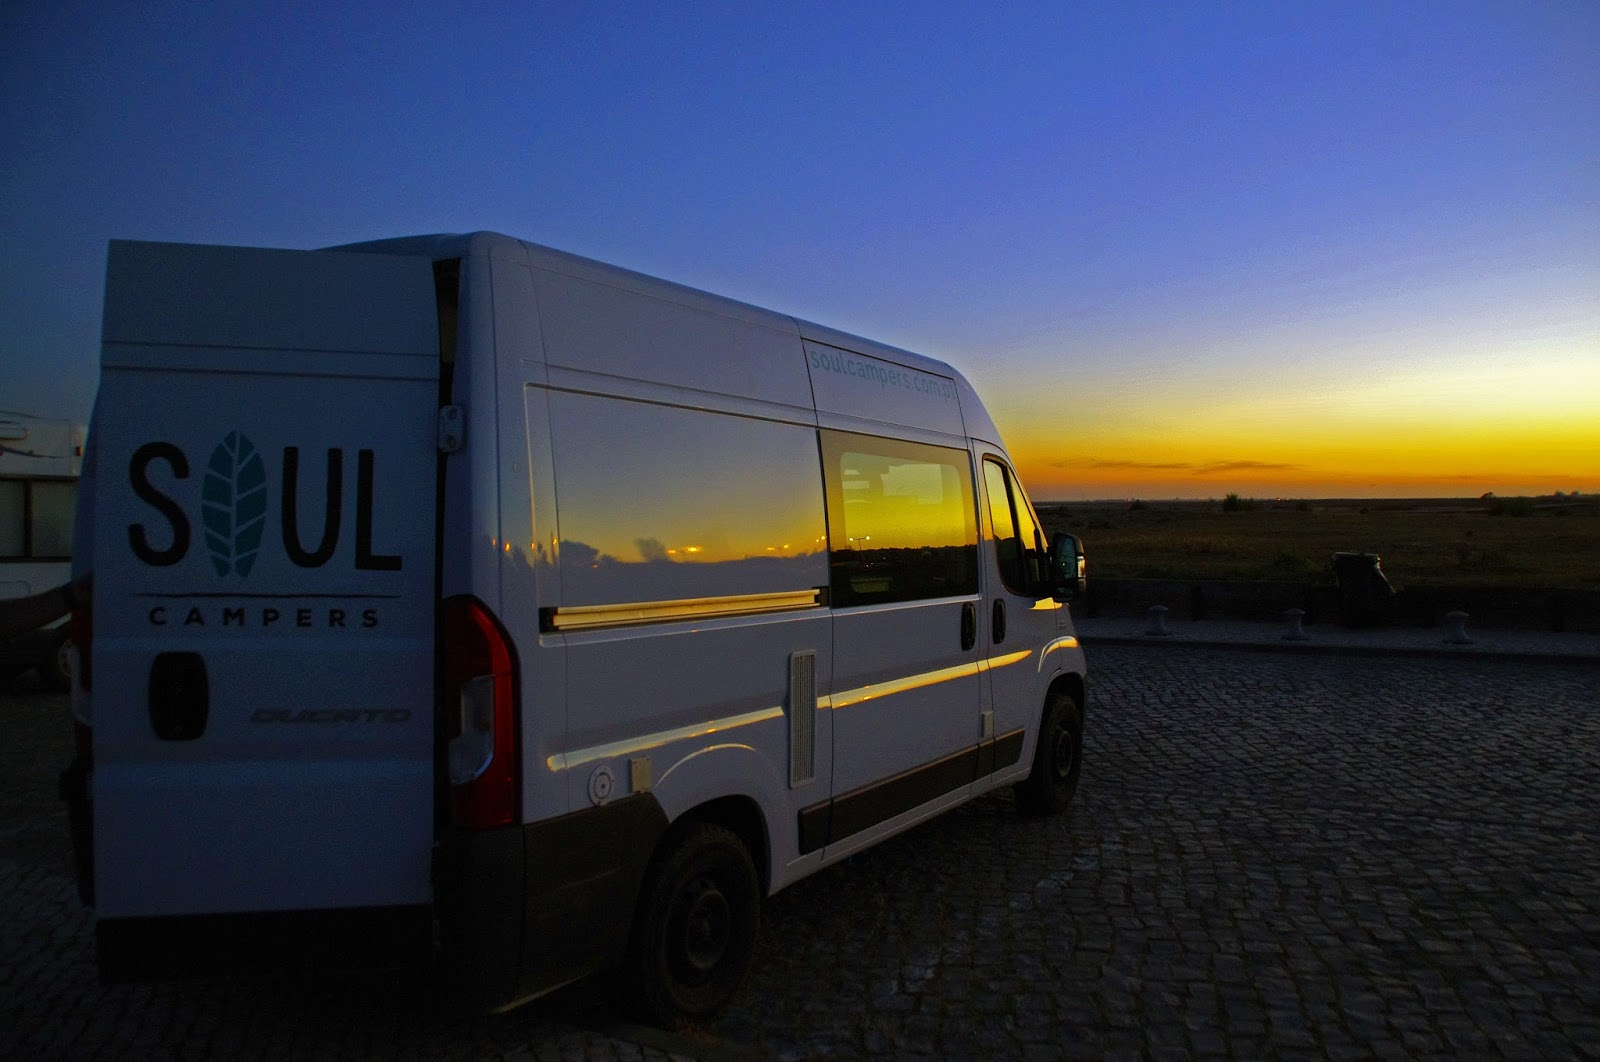 e7a74a0b24 10 Reasons You Should Explore Portugal with a Soul Campers Campervan - The  Aussie Flashpacker